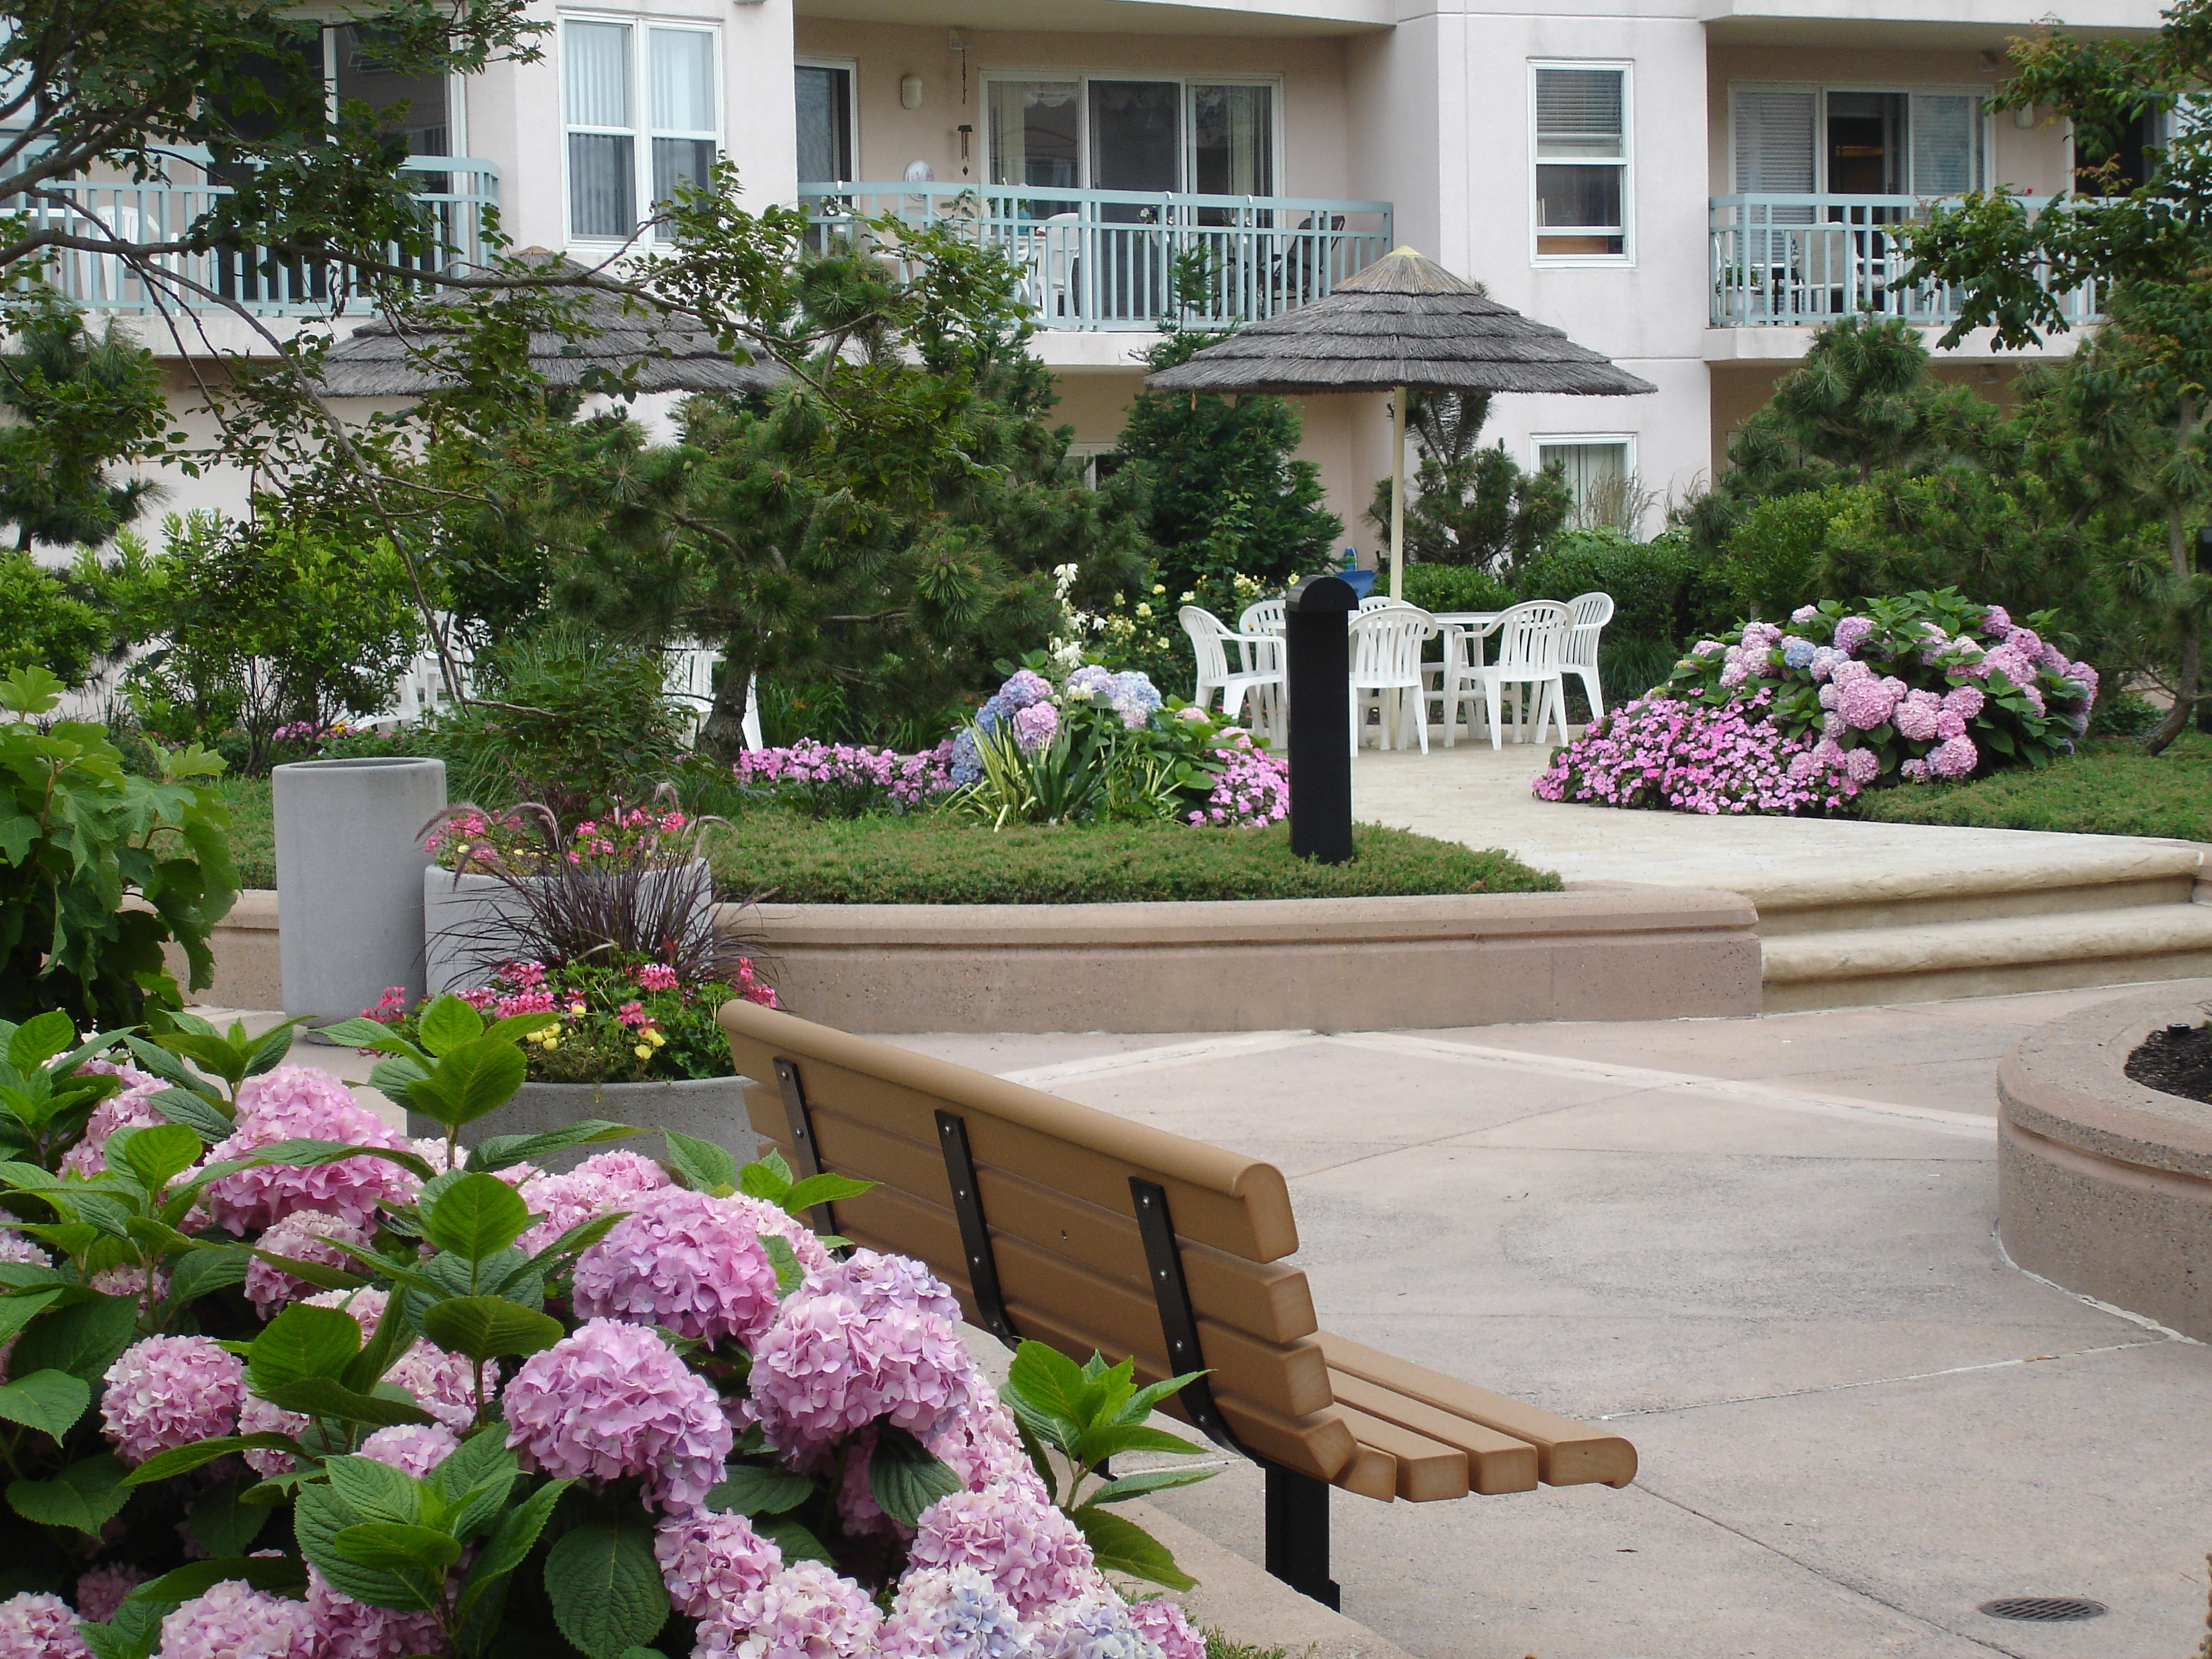 Seapointe Village Wildwood landscaping